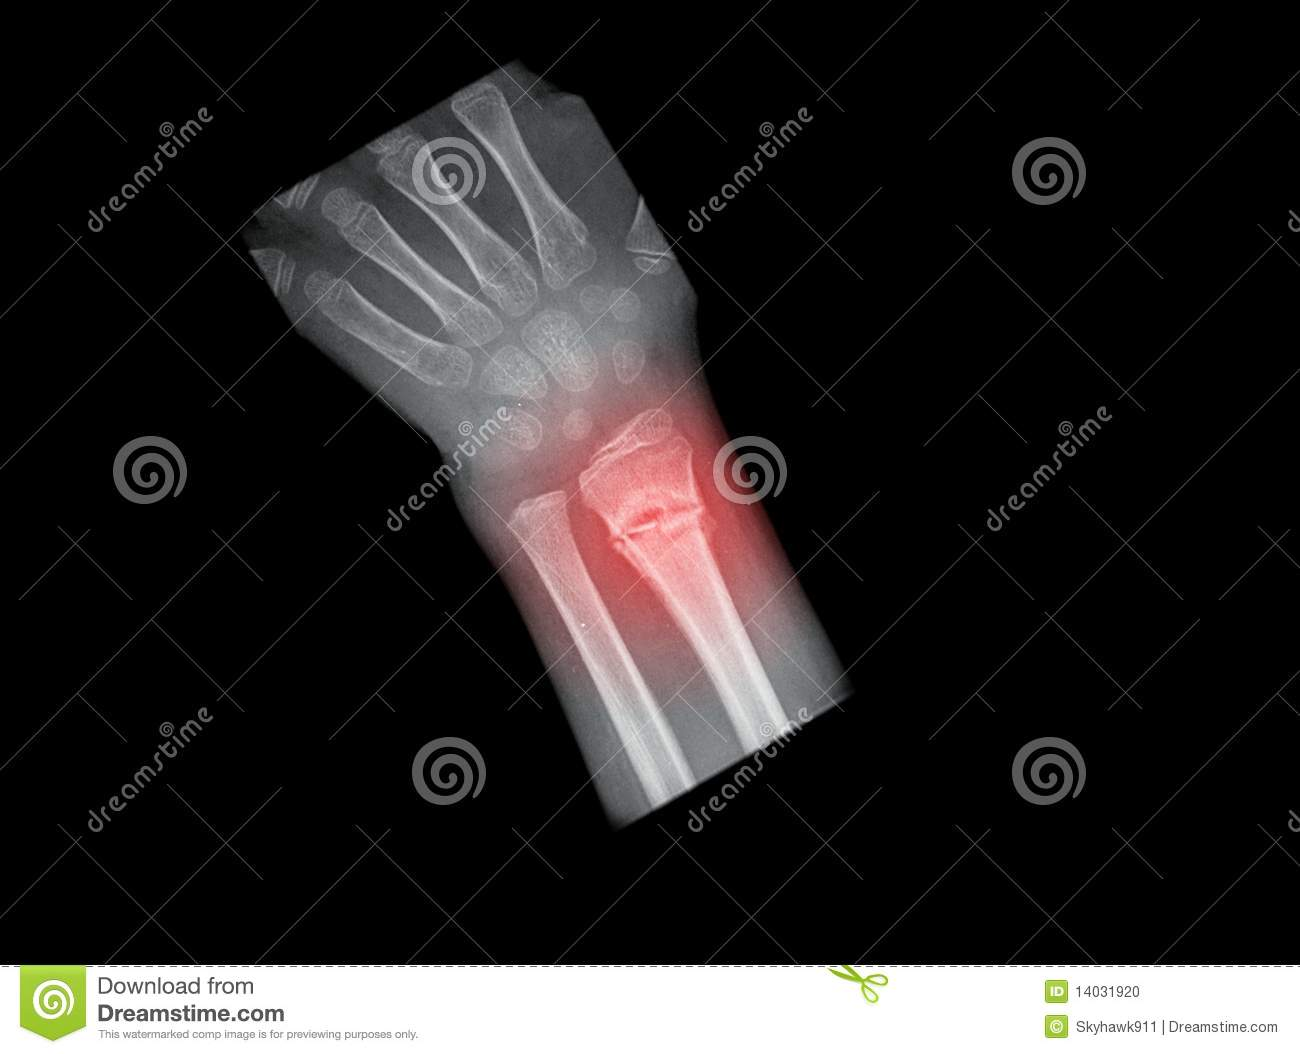 X Ray Broken Hand X-ray of a broken hand of a